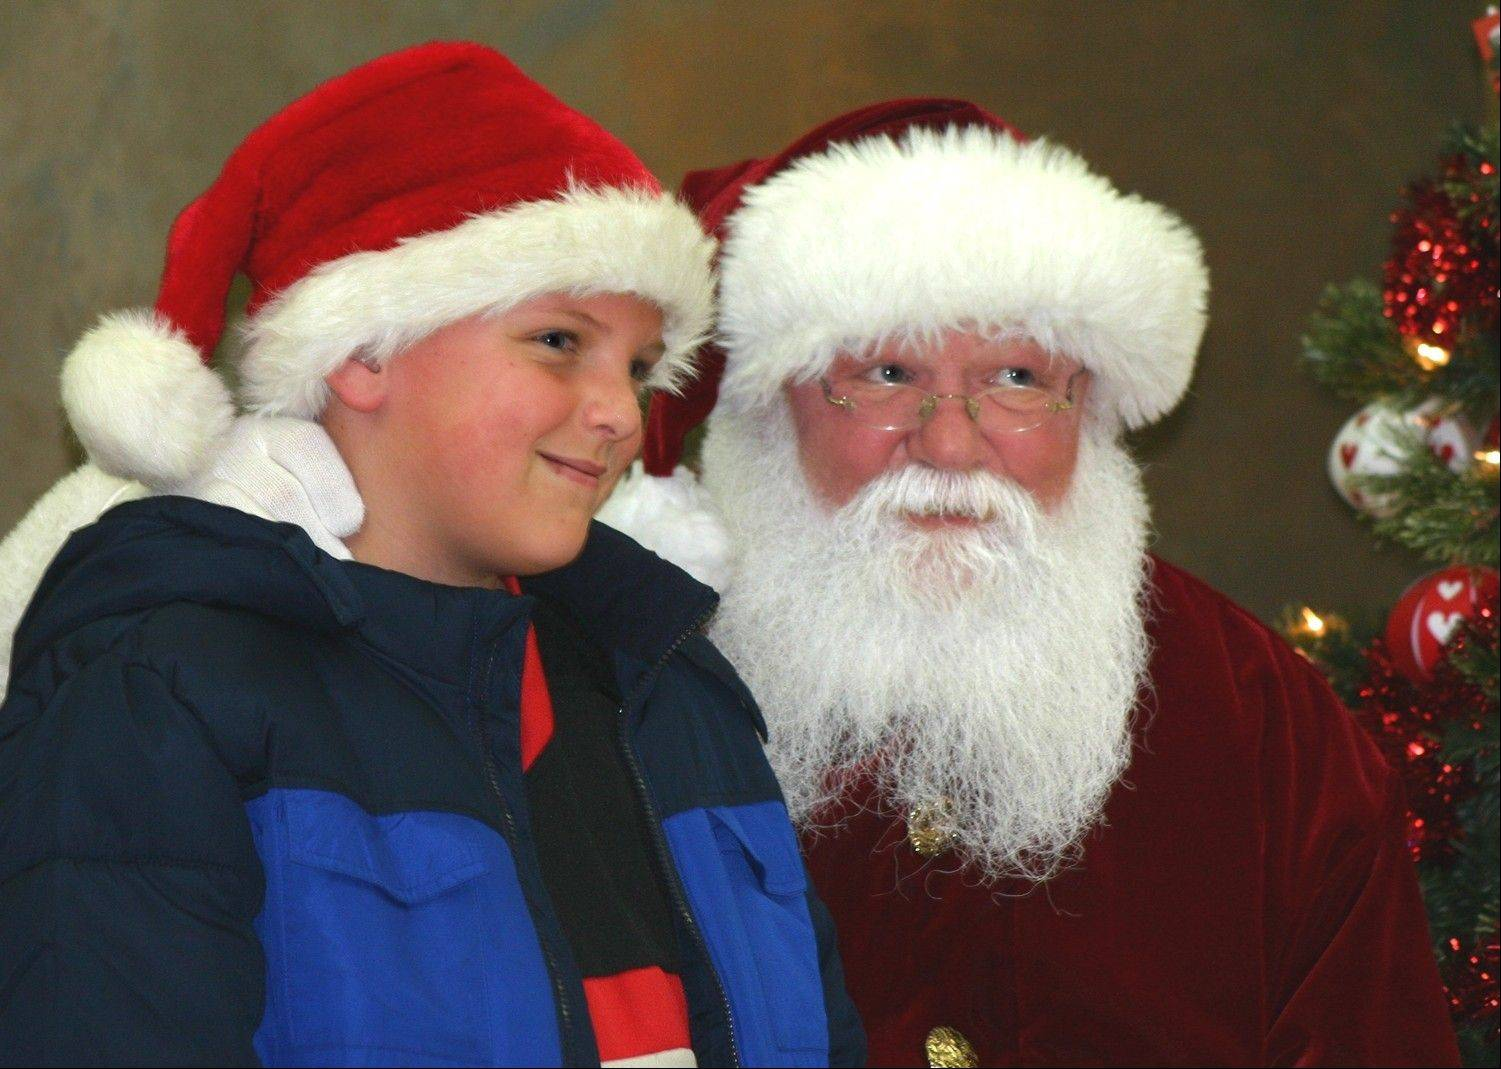 After viewing the lights, kids can head into the field house for a visit with Santa at Mooseheart. Dates for Santa's visits are Dec. 7-9, 15-16 and 21-23.